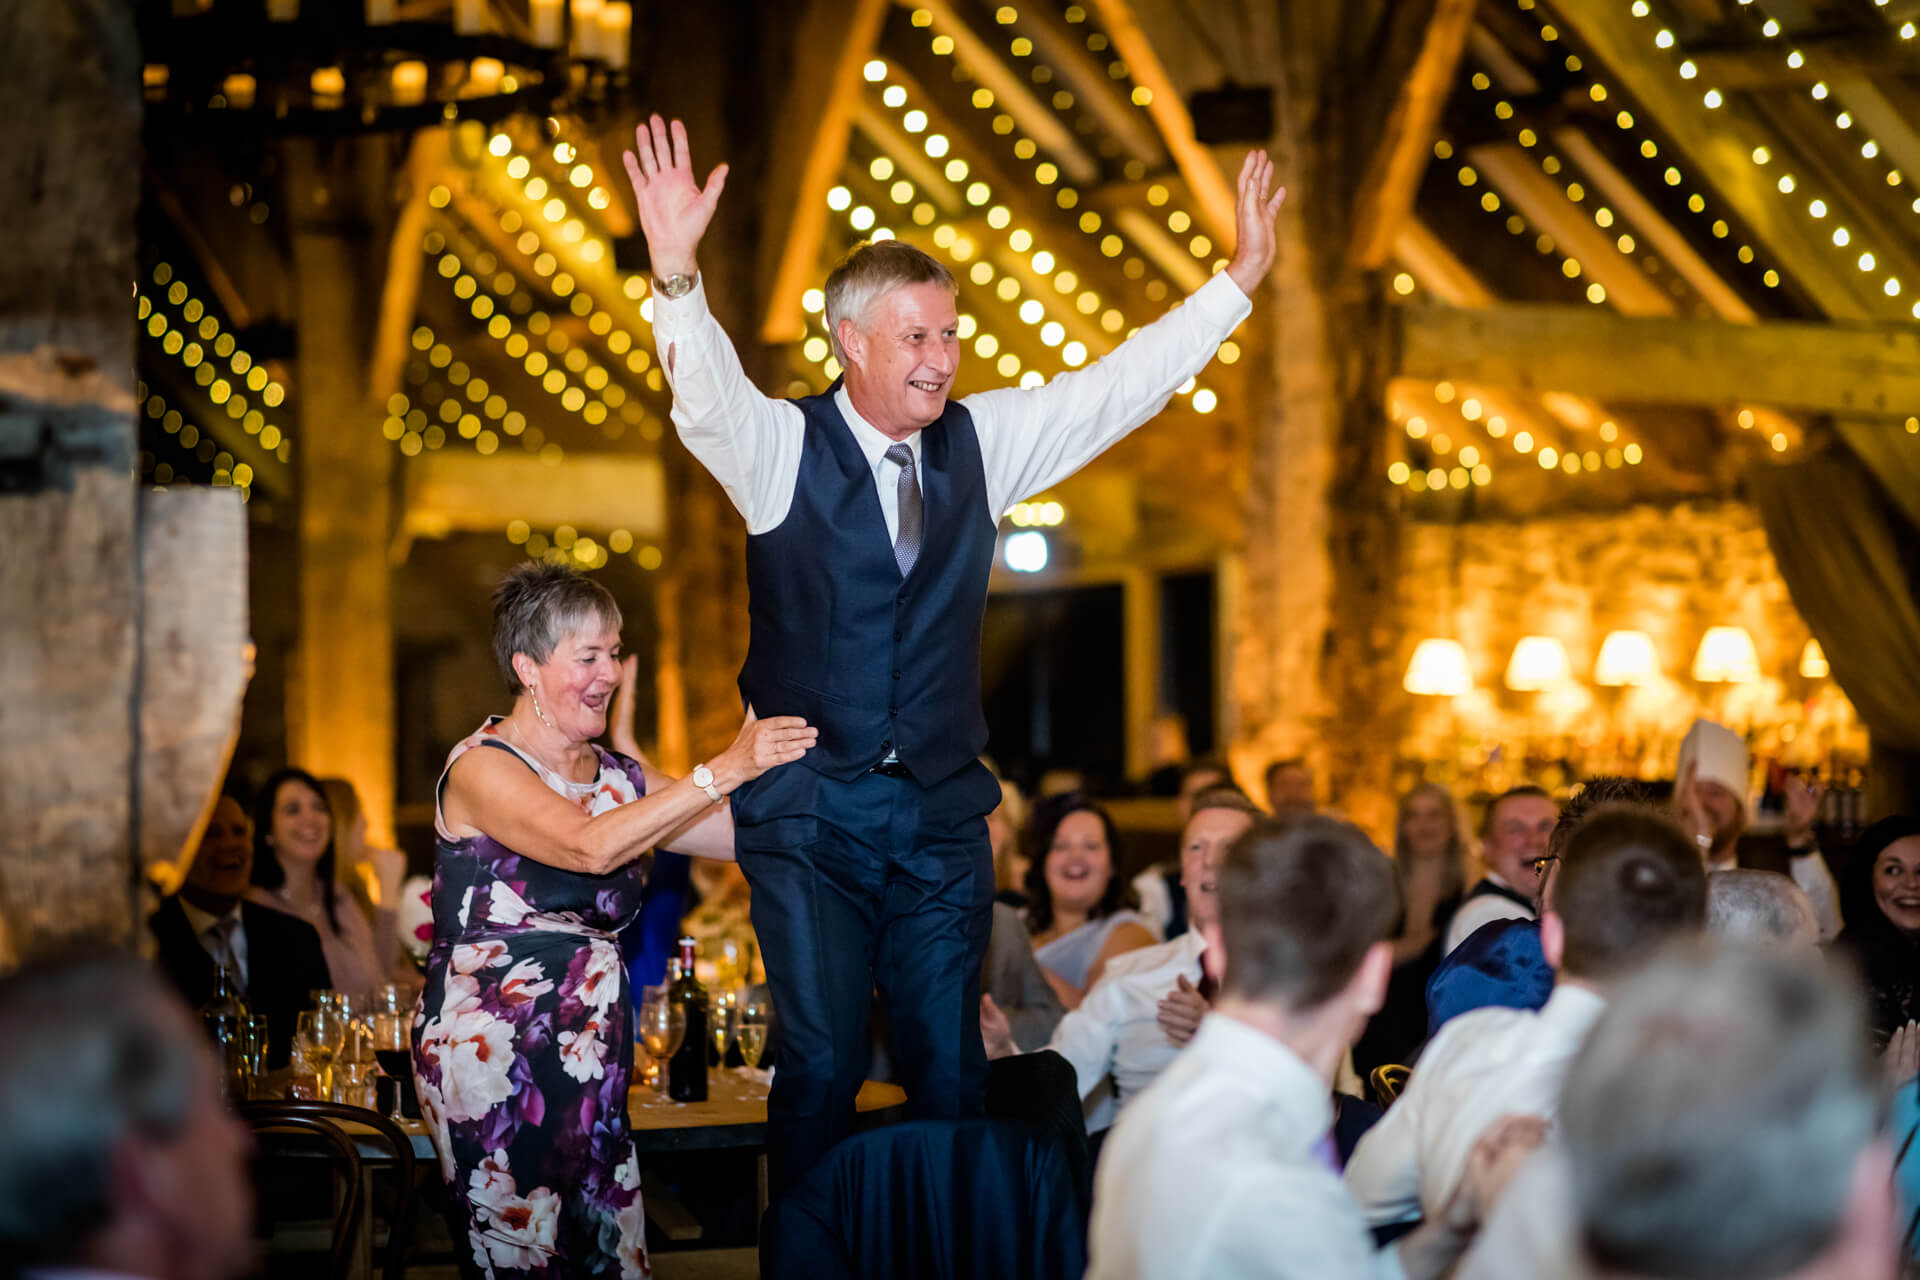 one of the wedding guests standing on a chair and cheering during the speeches